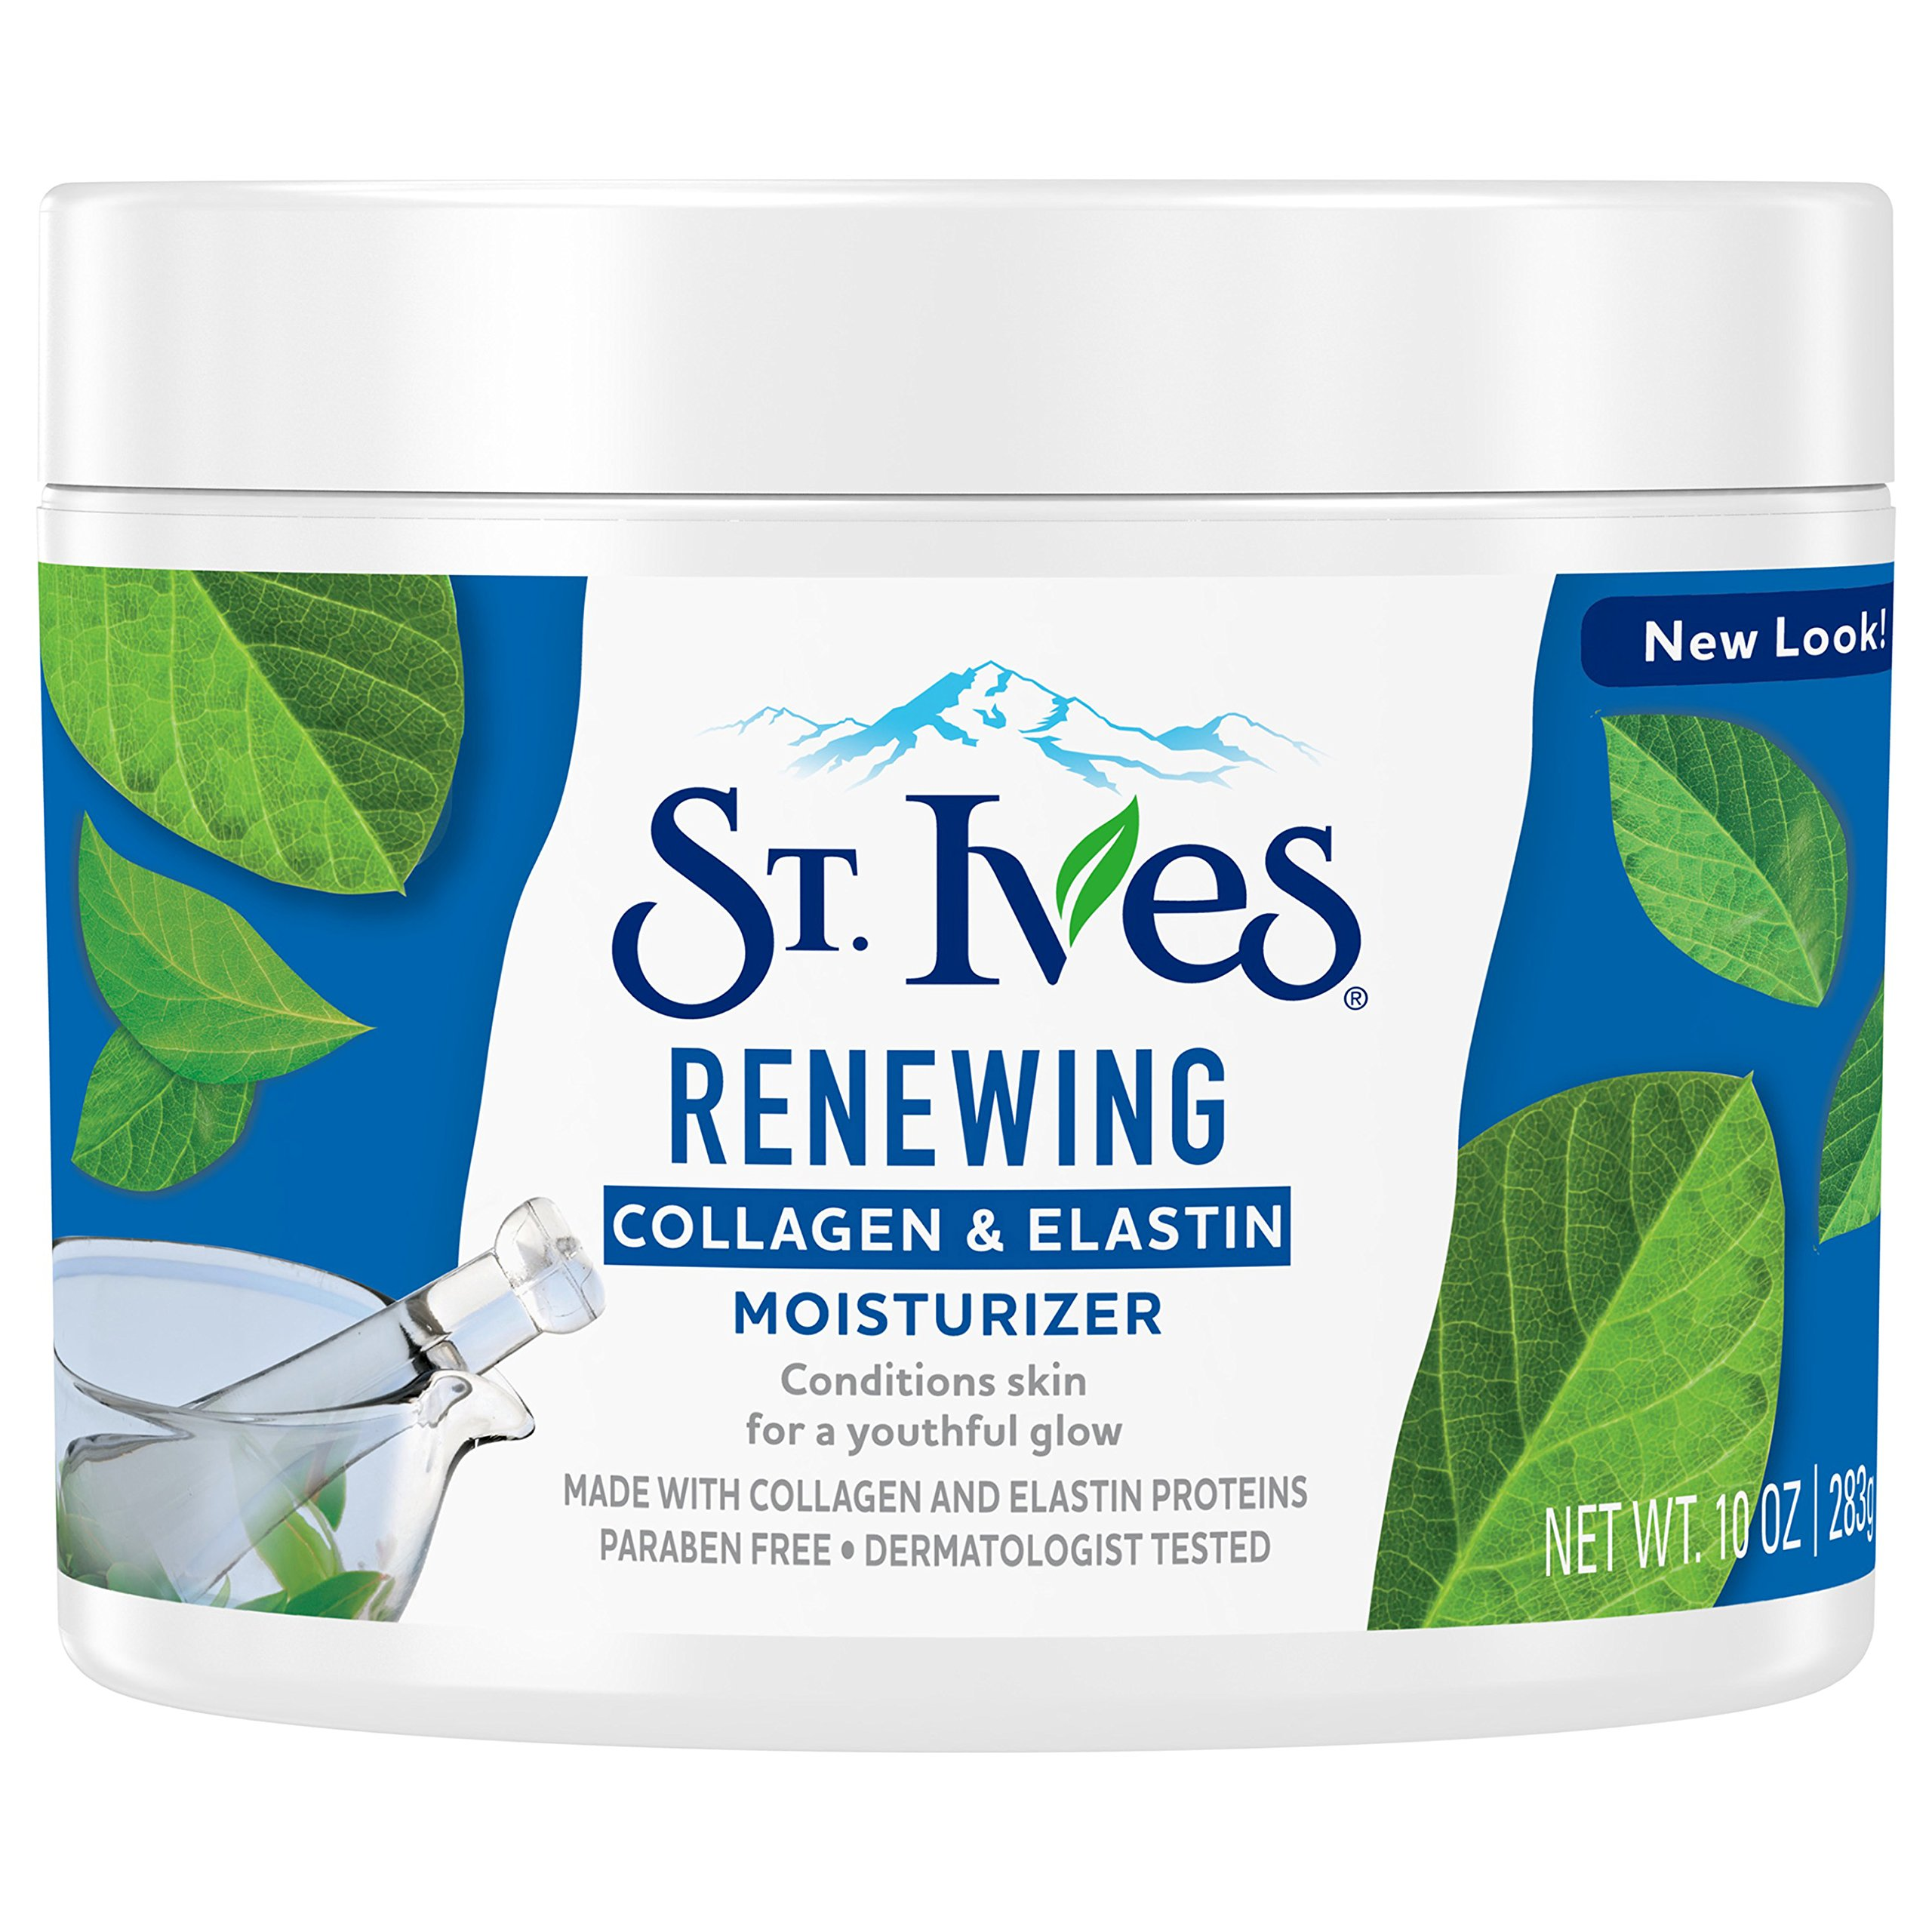 St. Ives Renewing Facial Moisturizer, Collagen Elastin, 10 oz